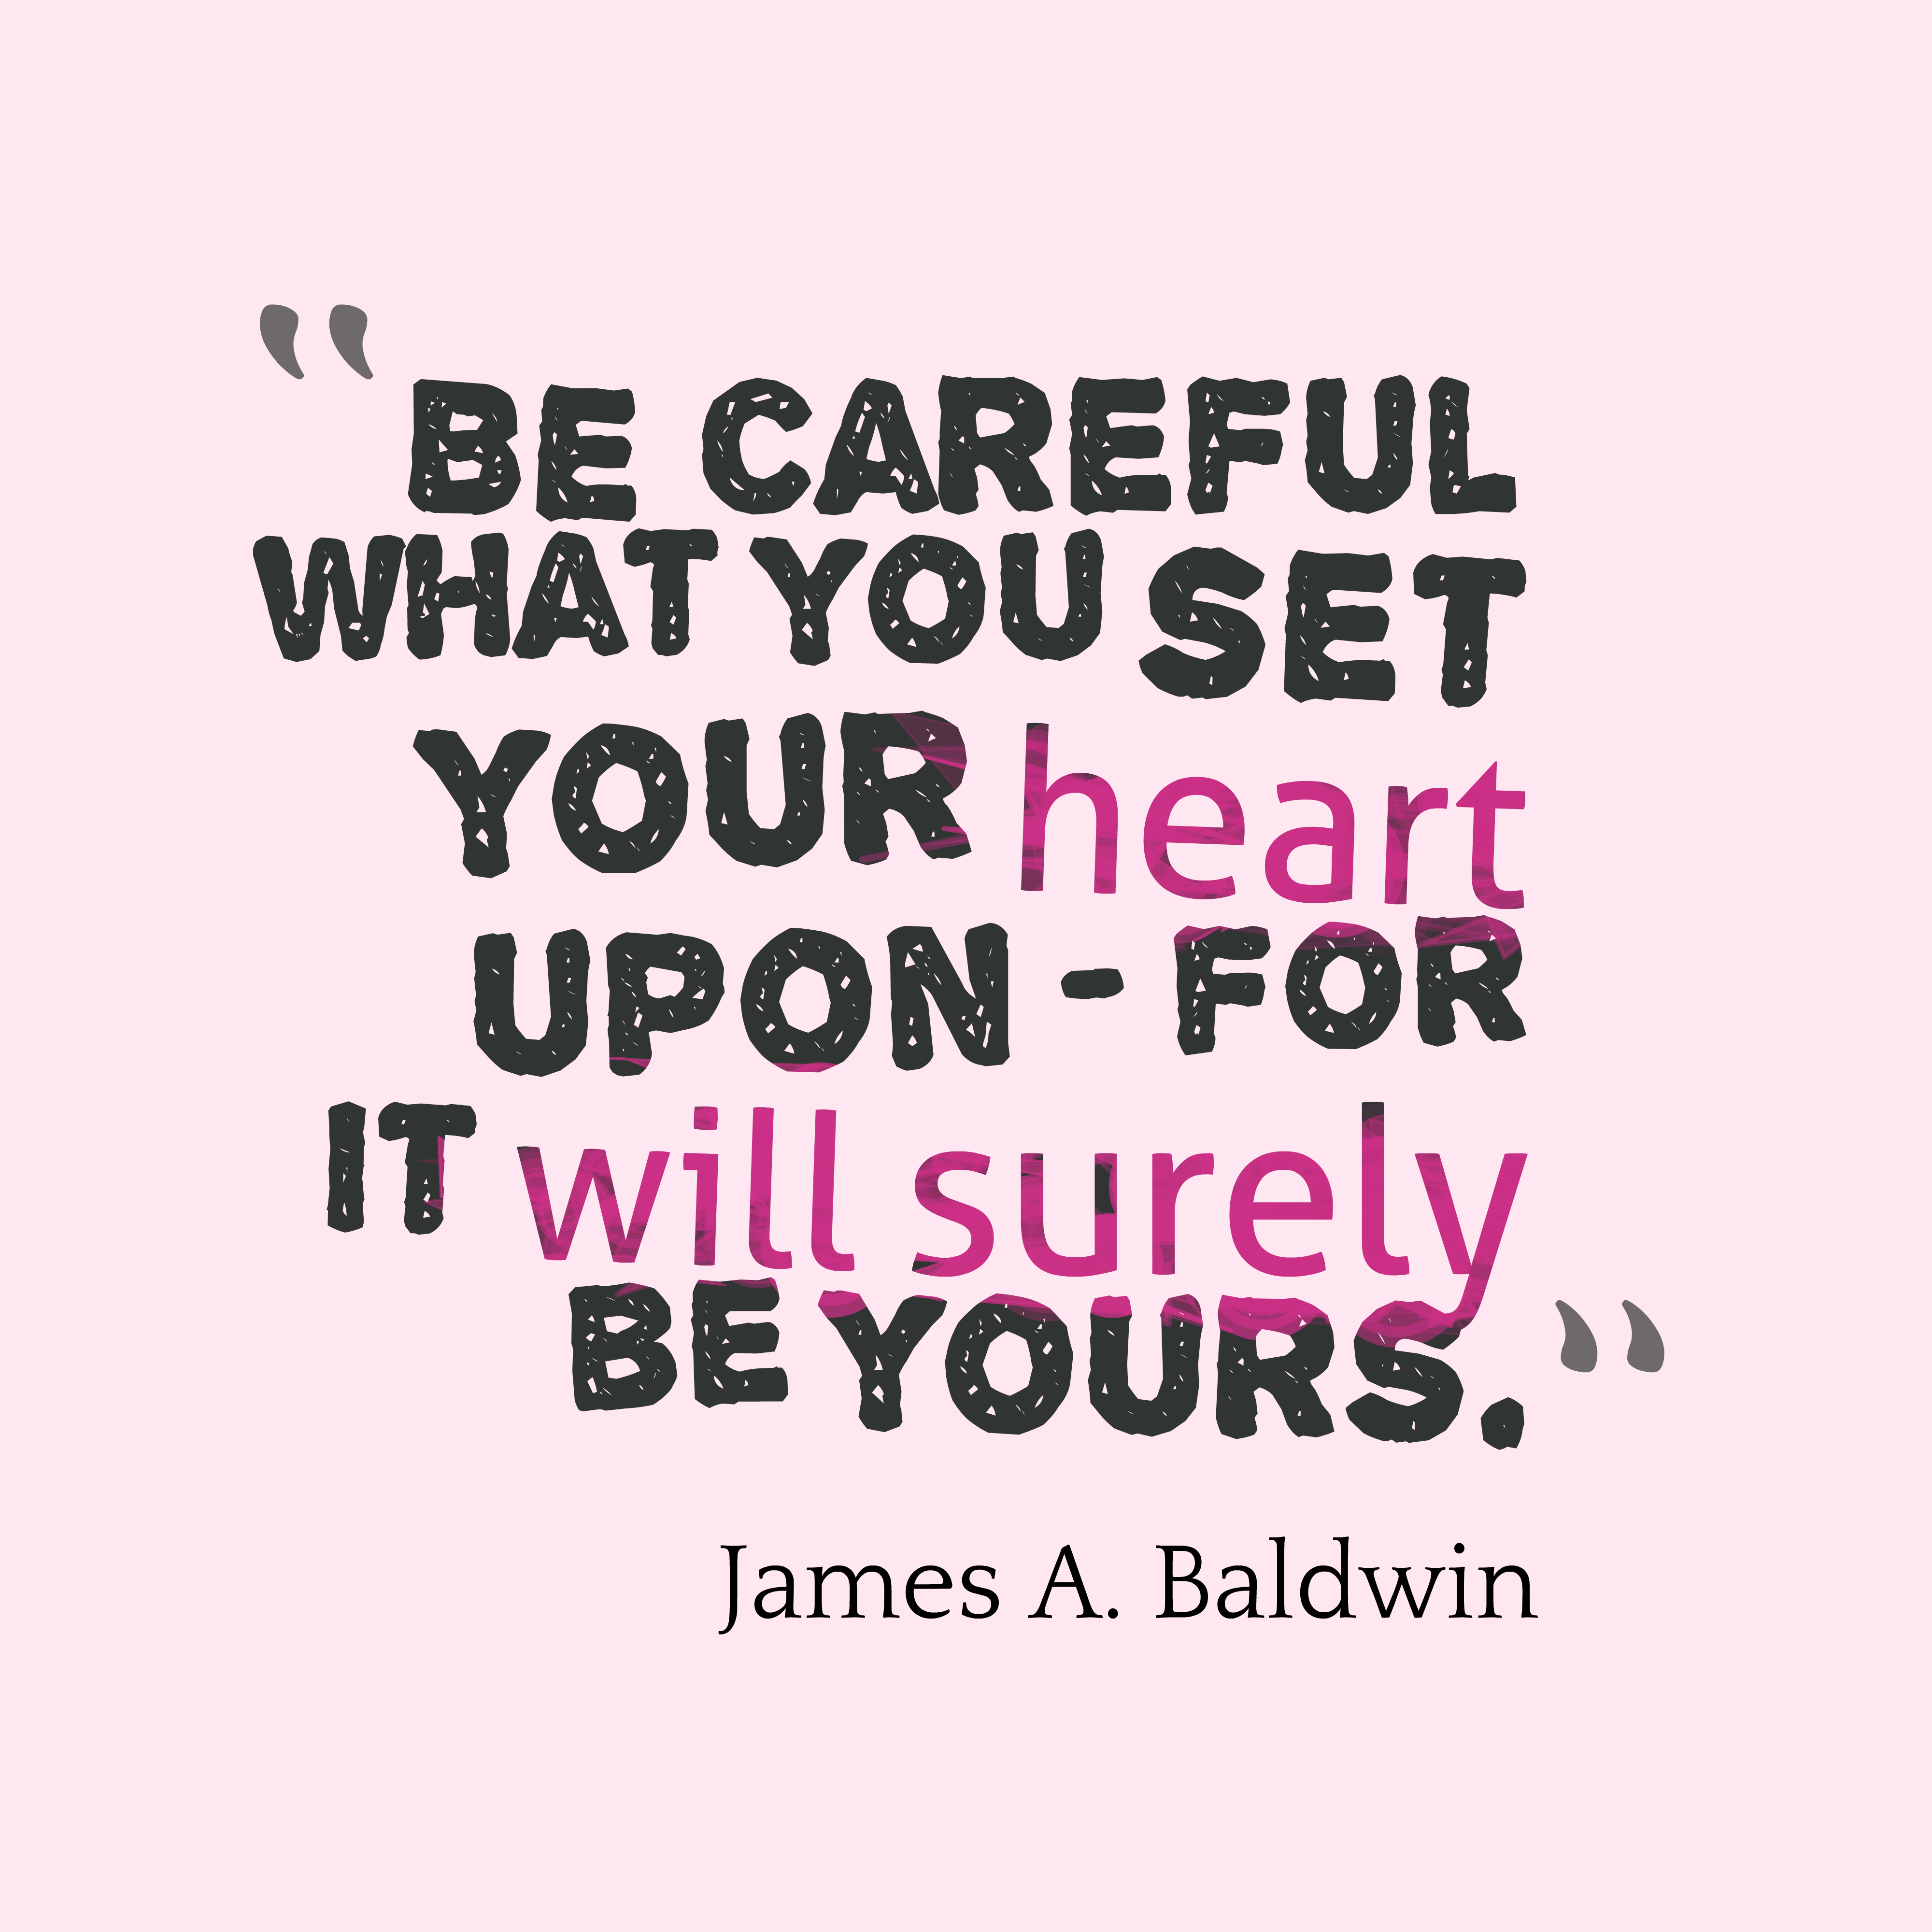 Picture » James A. Baldwin Quote About Careful